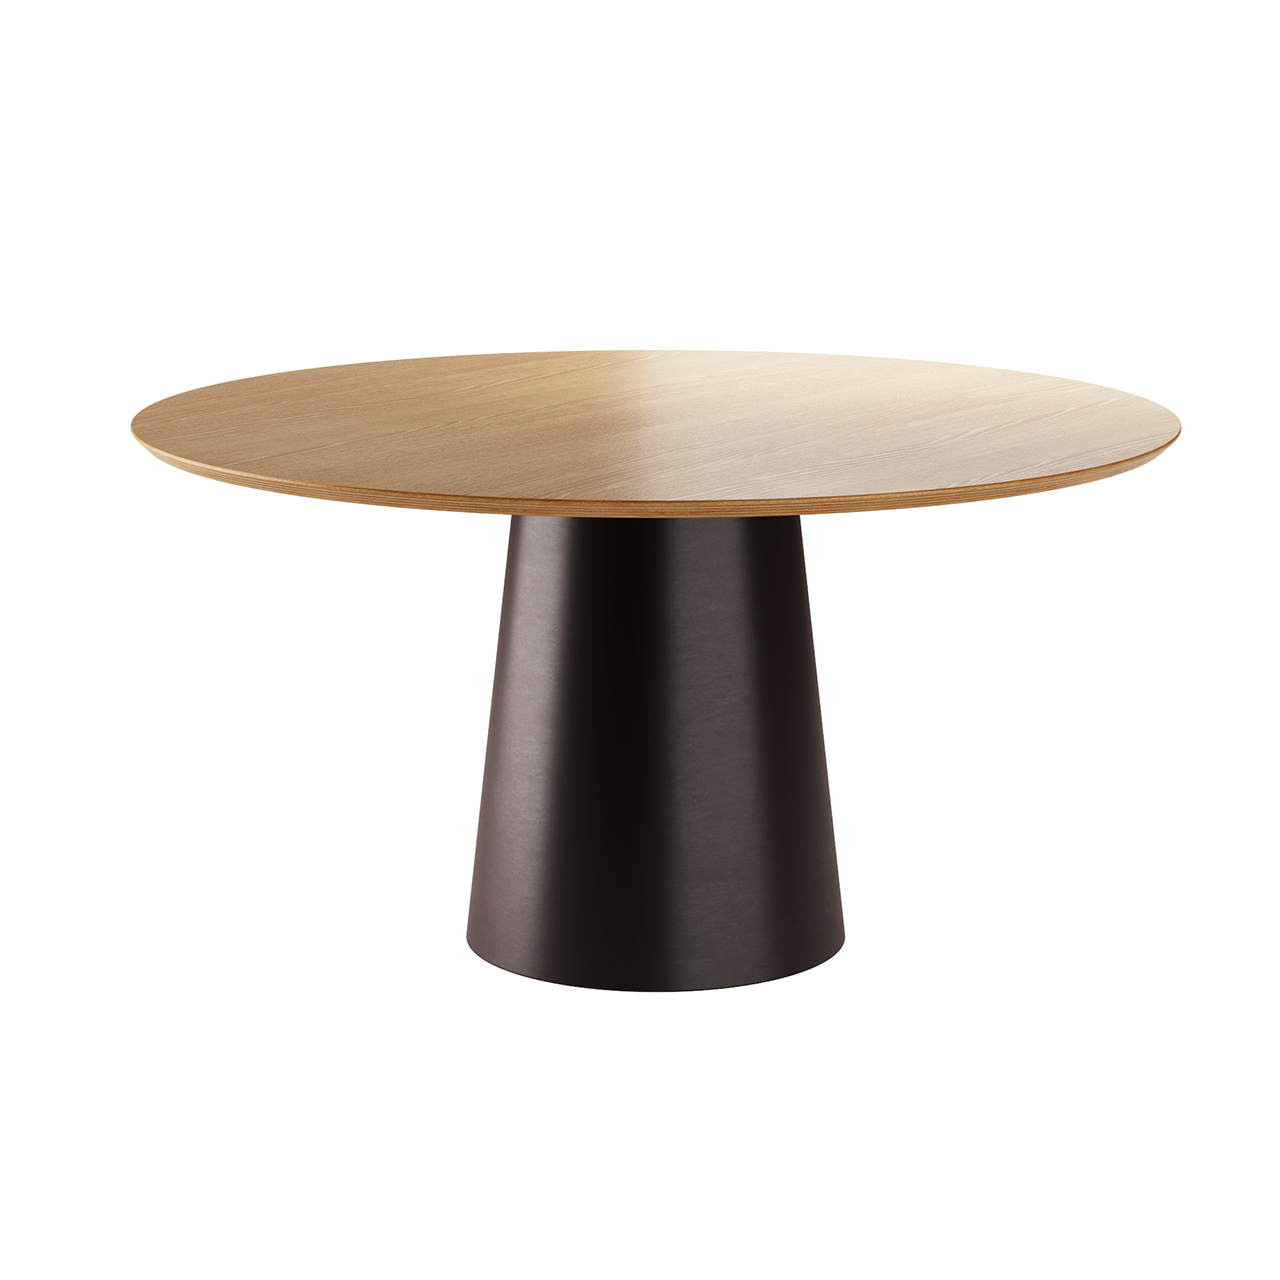 Totem Round Table by Sovet